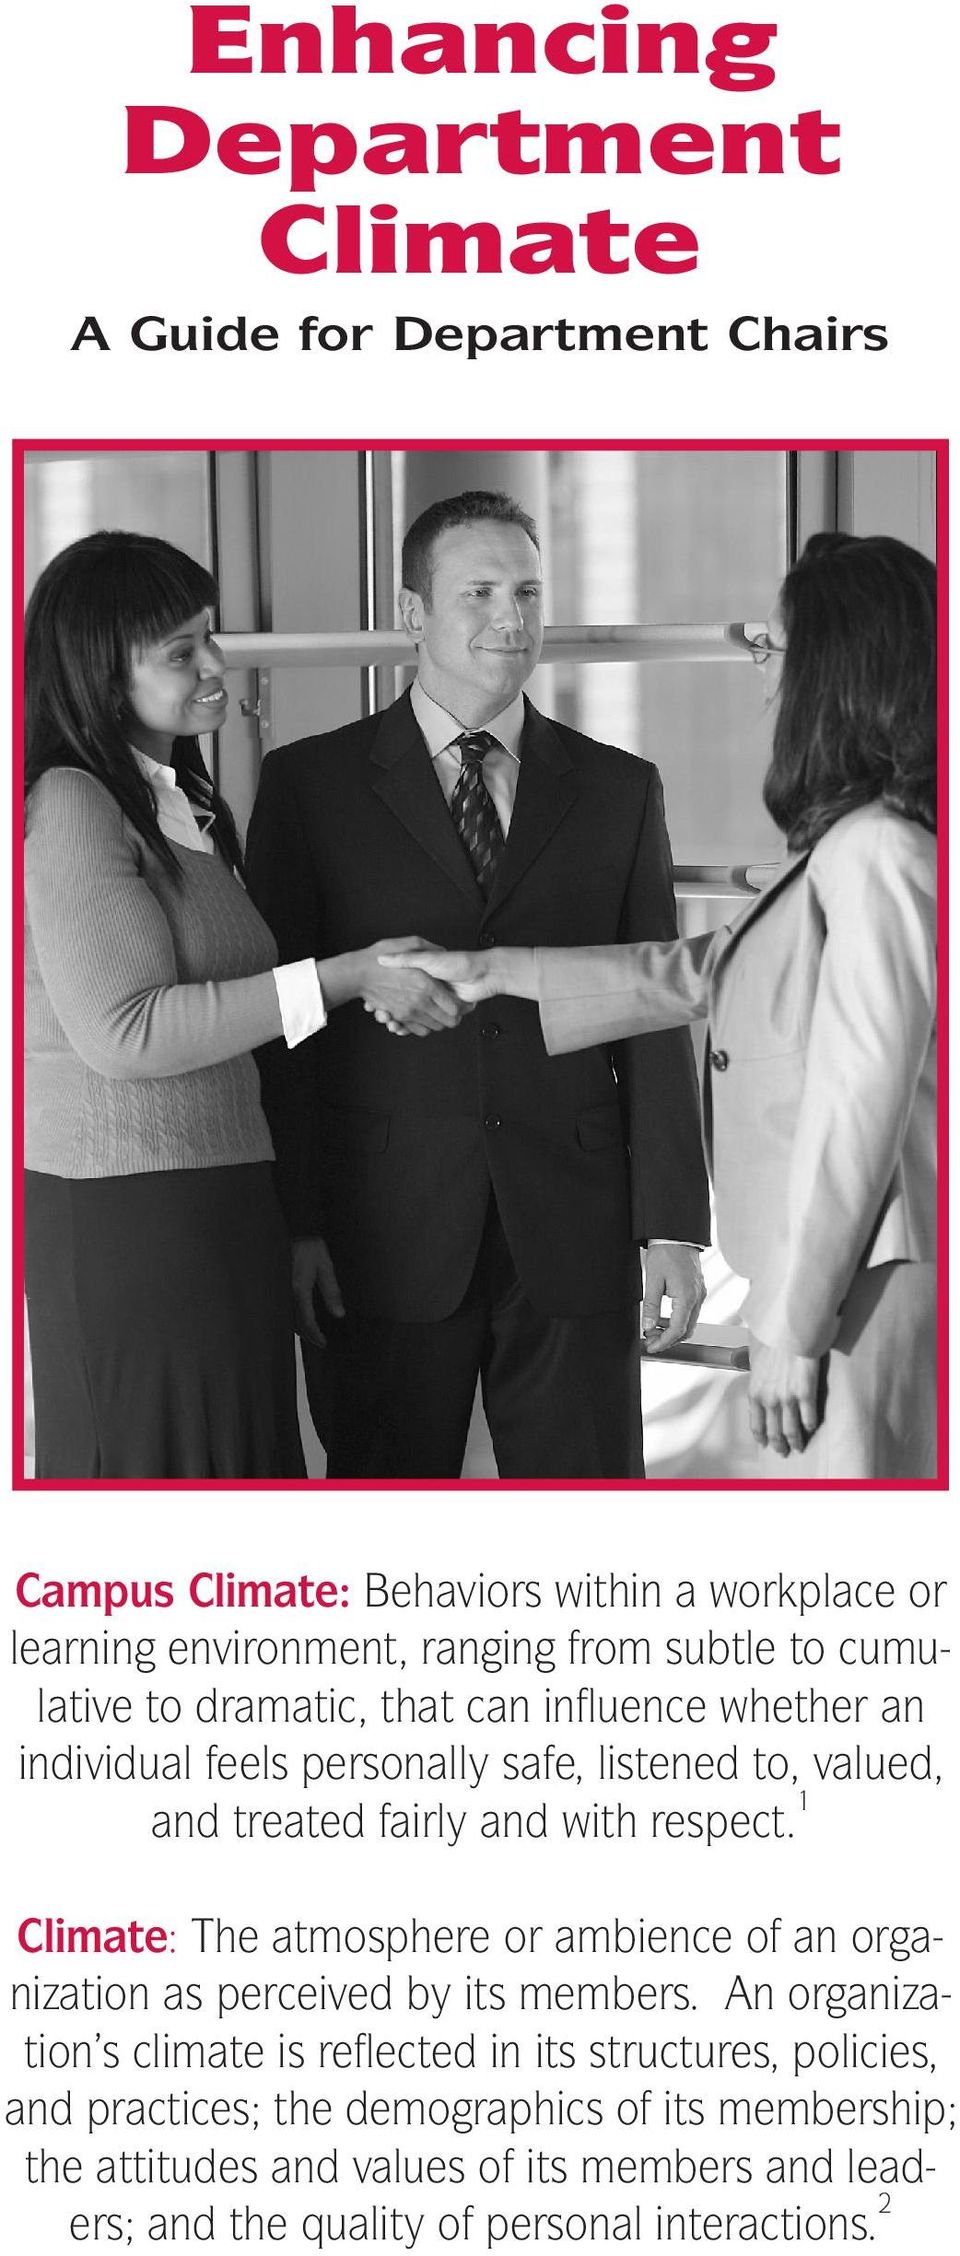 1 Climate: The atmosphere or ambience of an organization as perceived by its members.